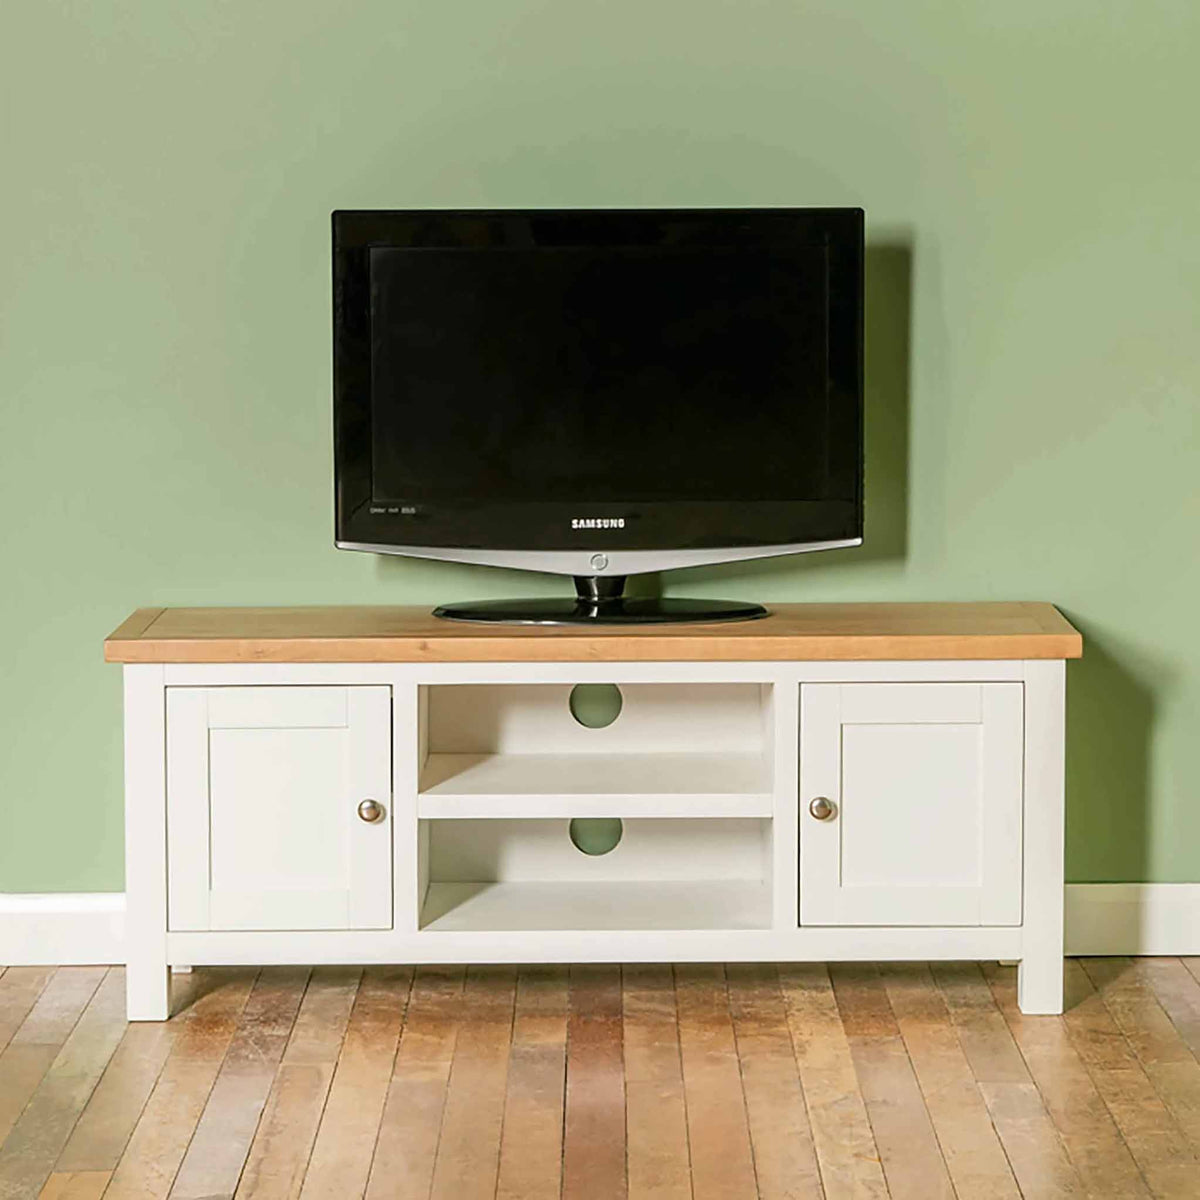 Farrow white 120cm TV Stand - Lifestyle front view